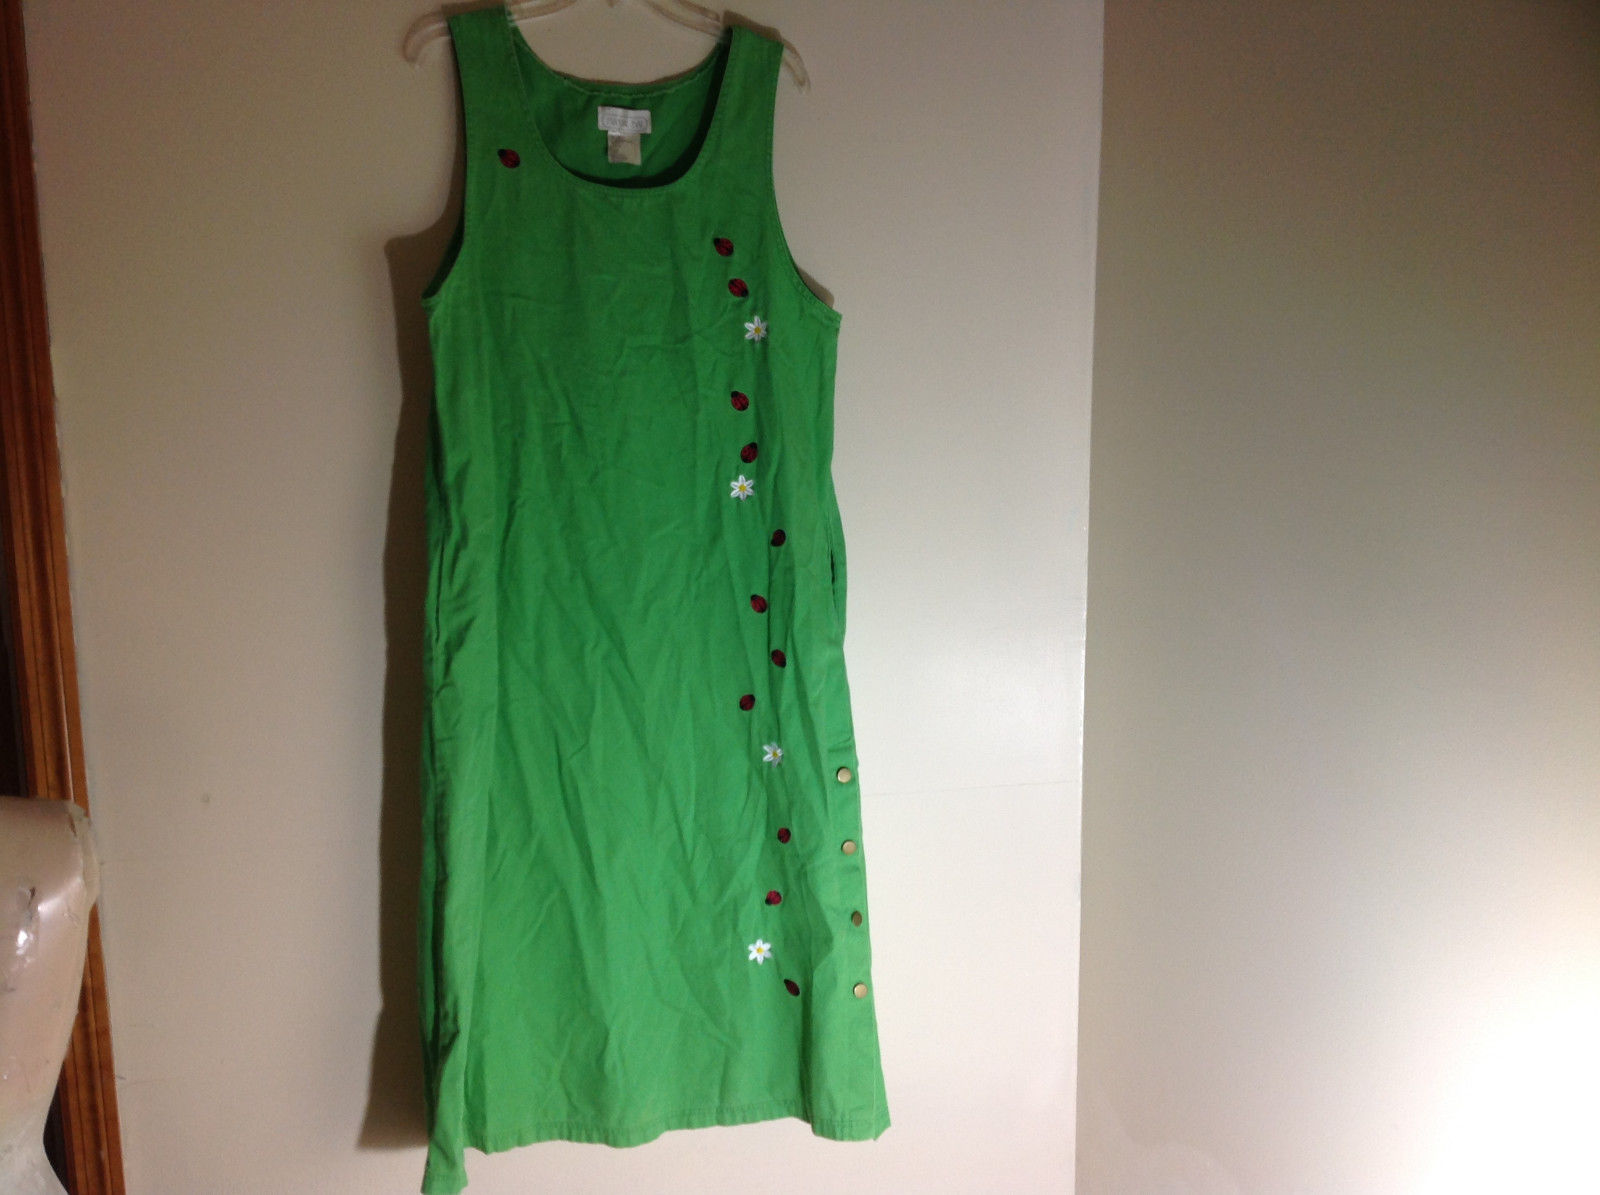 Mandal Bay Full Length Sleeveless Green Decorated Dress Pockets Size XL